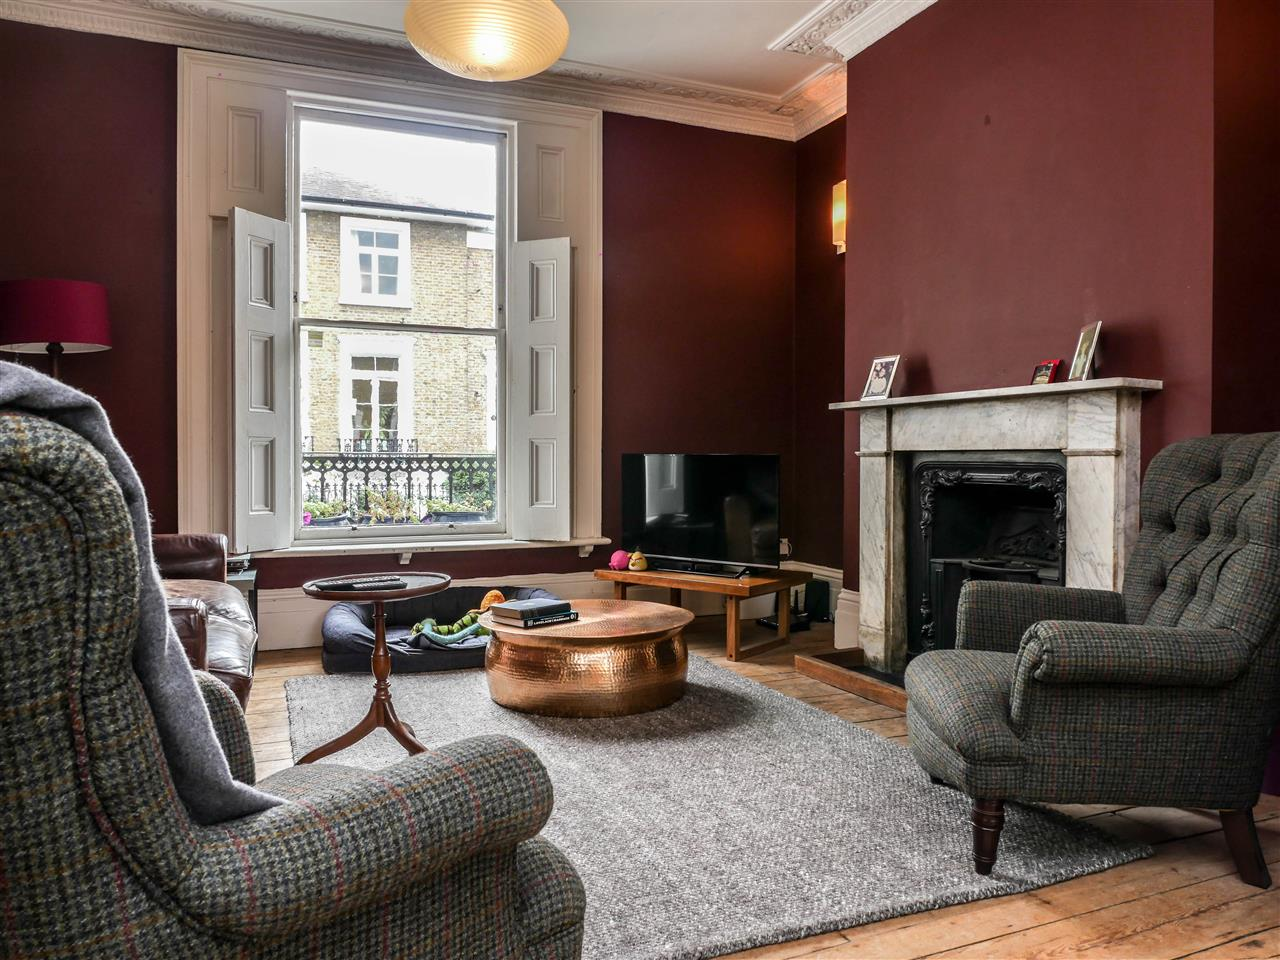 4 bed terraced to rent in Tavistock Terrace, London, N19